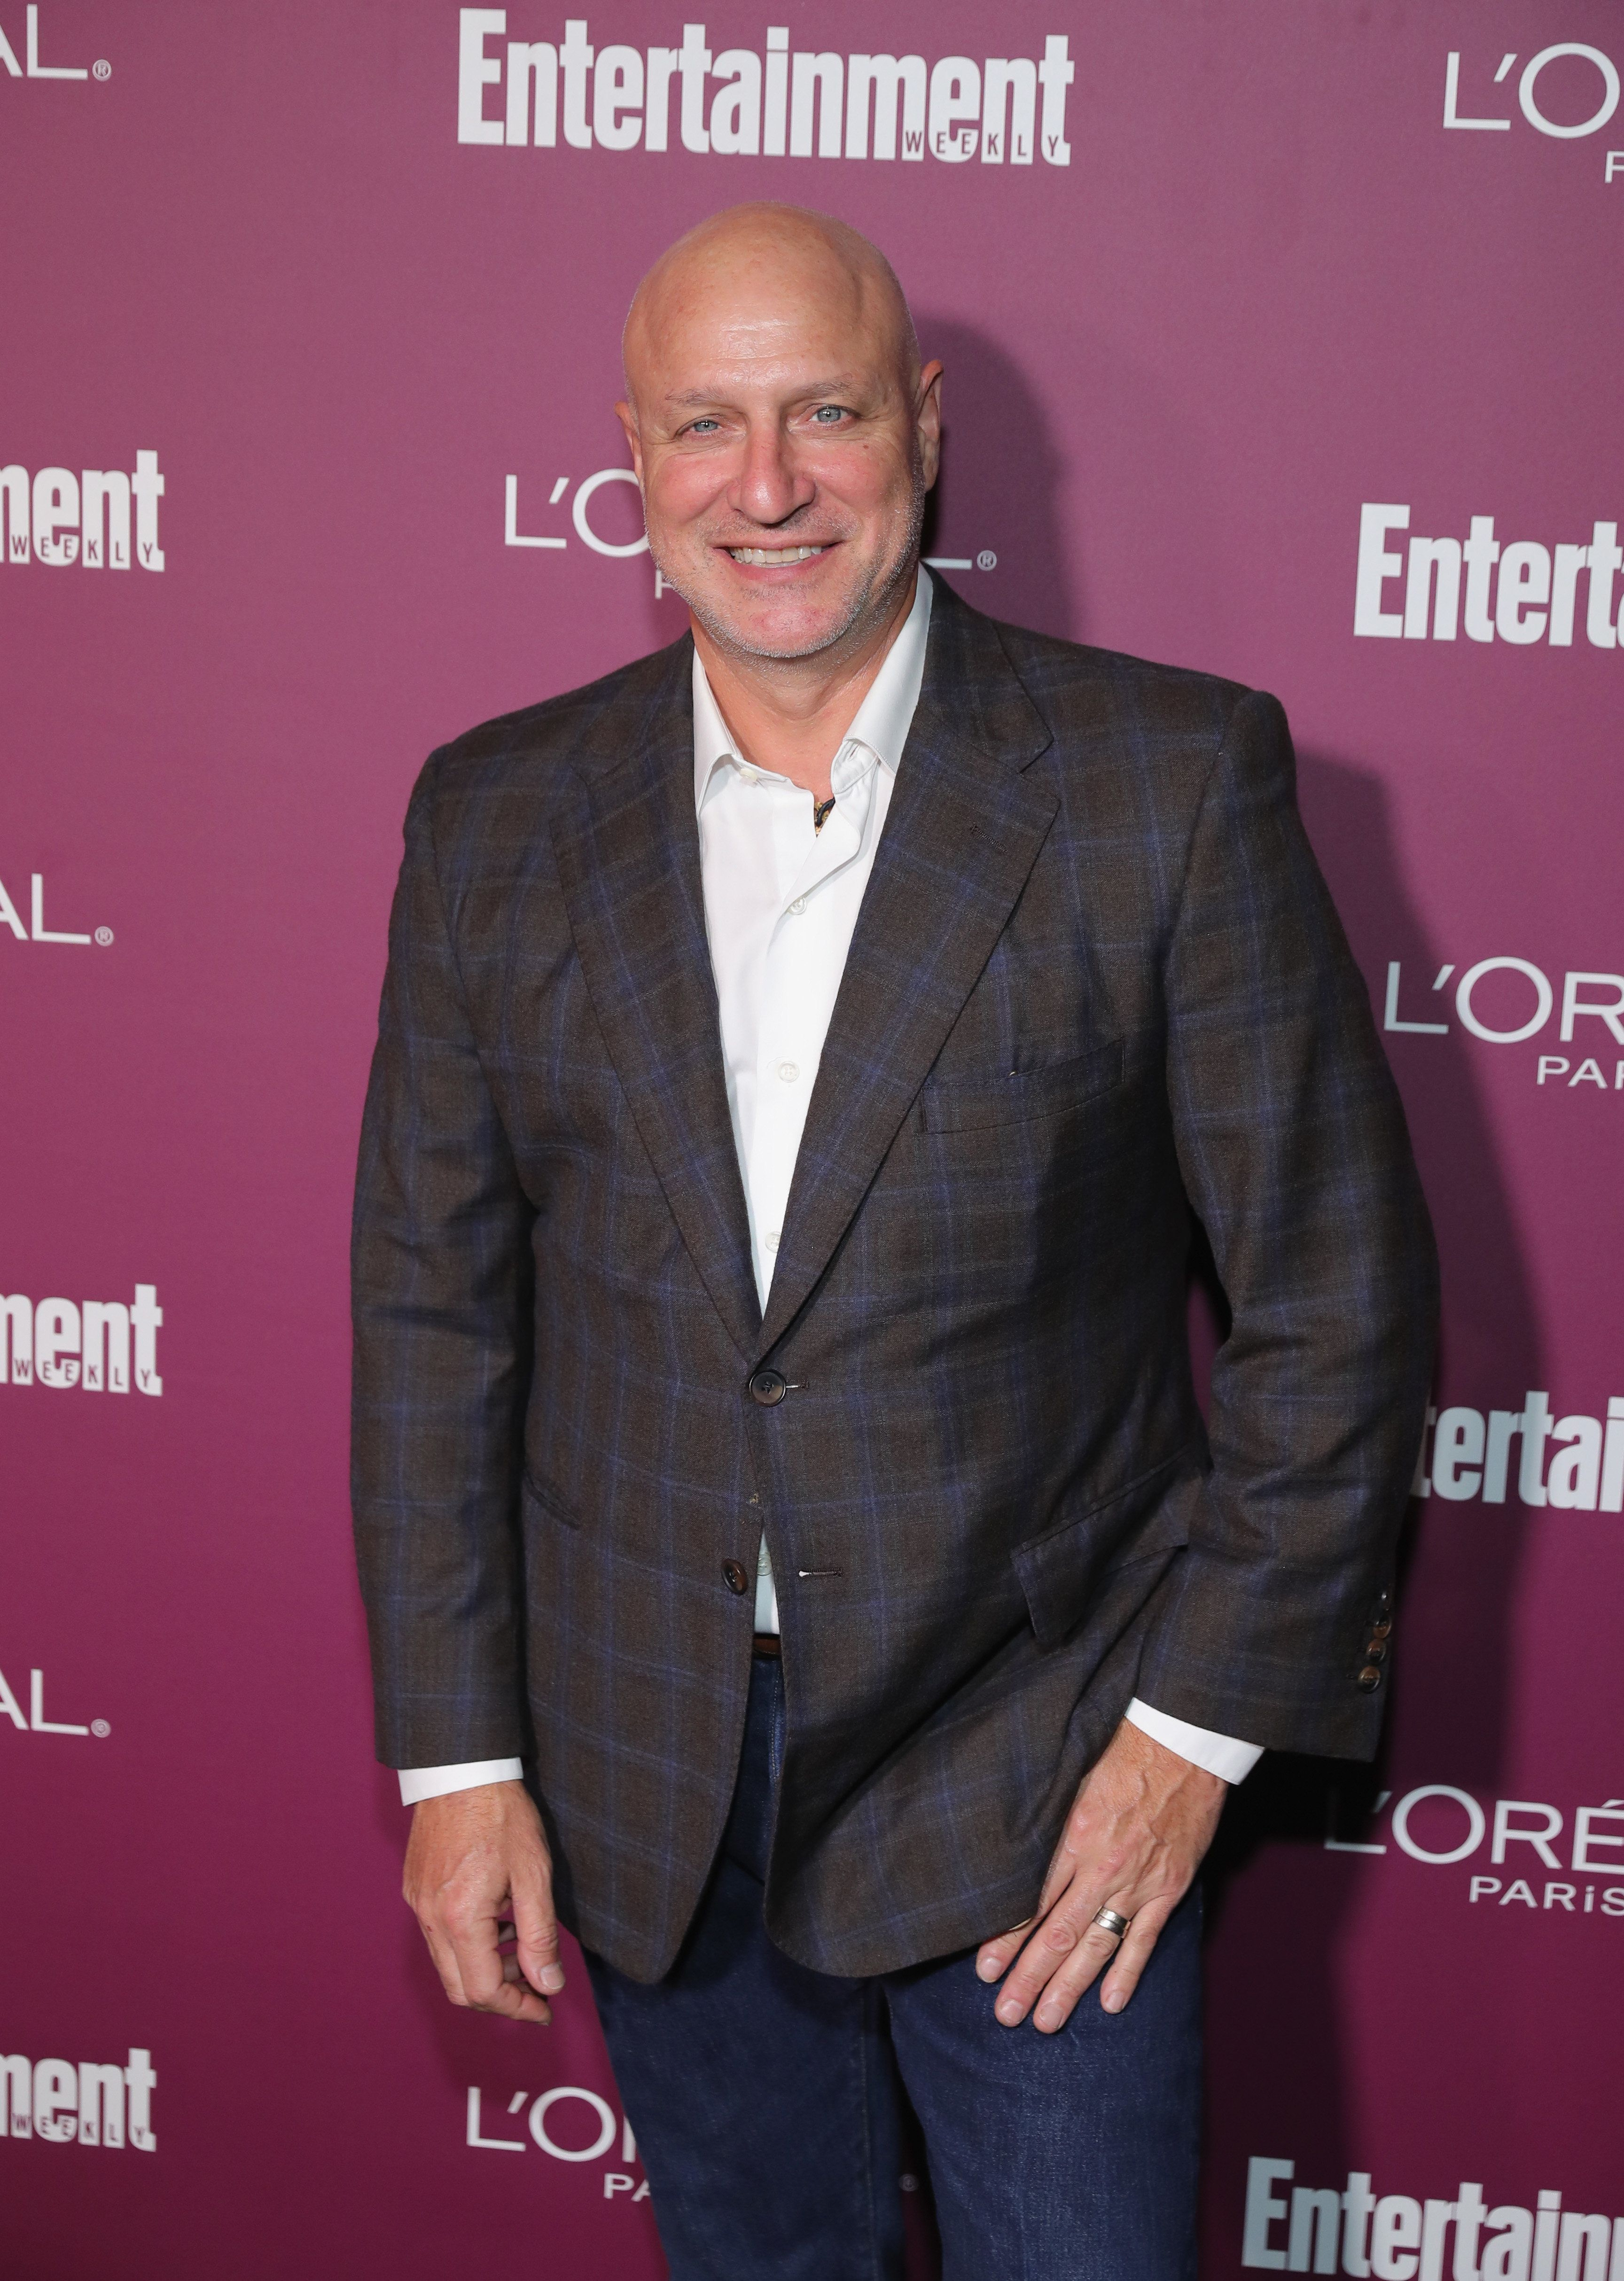 WEST HOLLYWOOD, CA - SEPTEMBER 15: Tom Colicchio attends the 2017 Entertainment Weekly Pre-Emmy Party at Sunset Tower on September 15, 2017 in West Hollywood, California.  (Photo by Neilson Barnard/Getty Images for Entertainment Weekly)